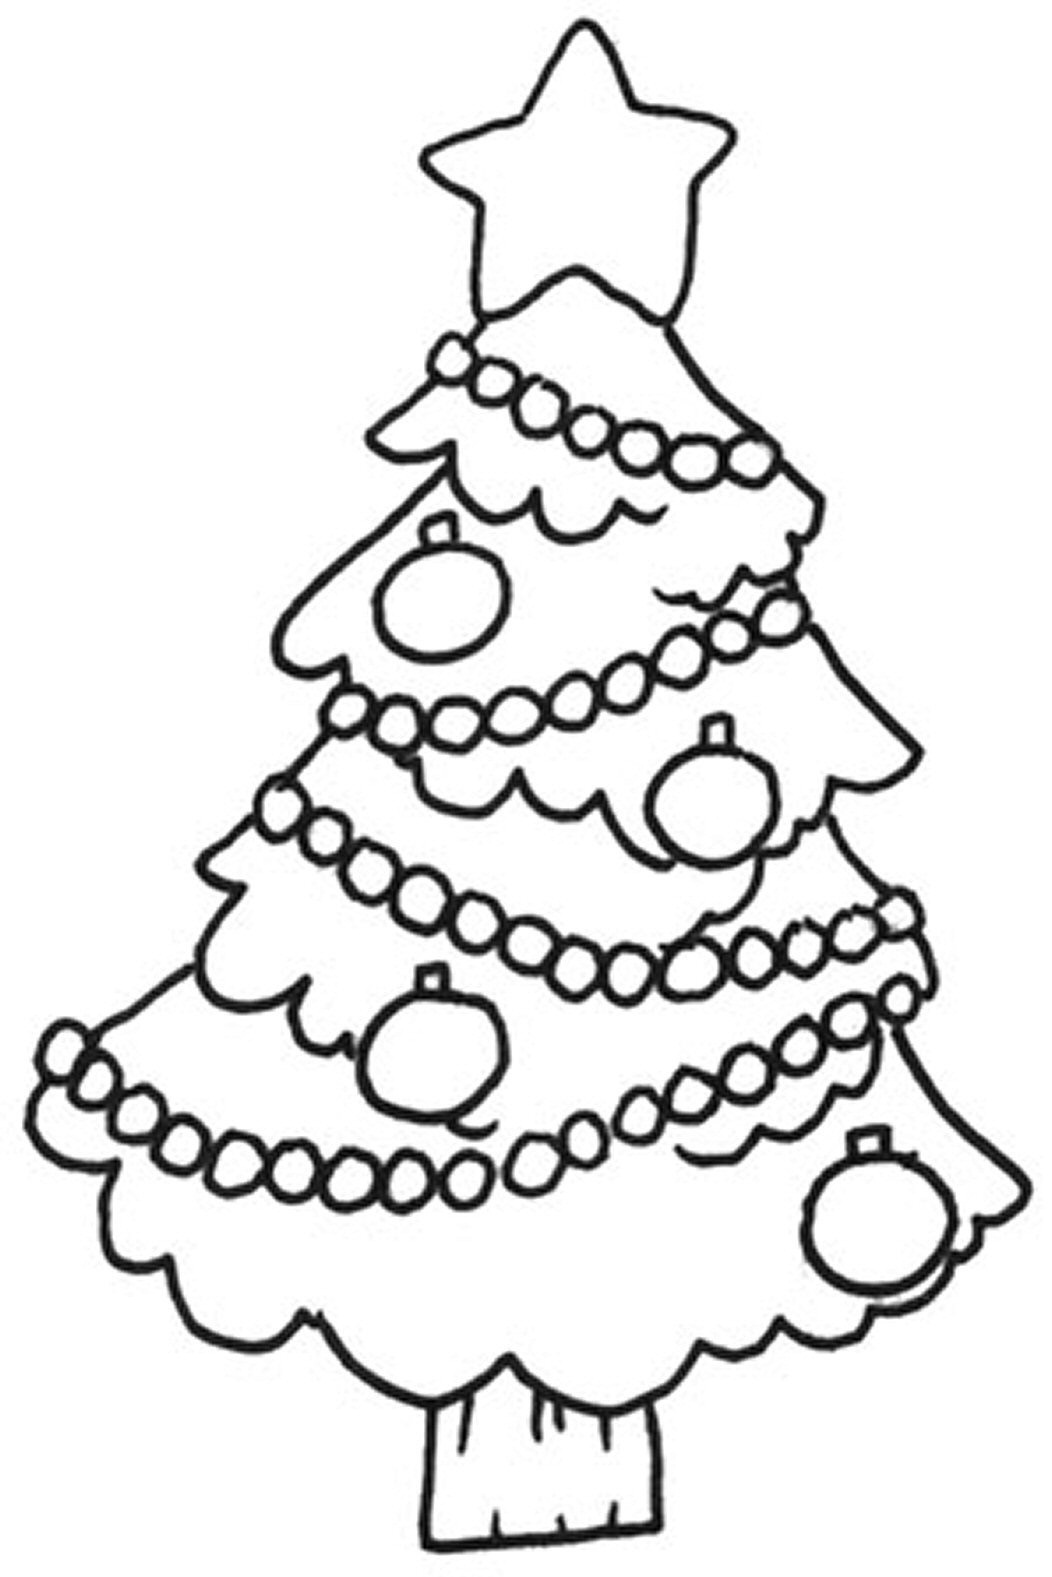 Christmas Ball Printable Coloring Pages With Free Tree For Kids